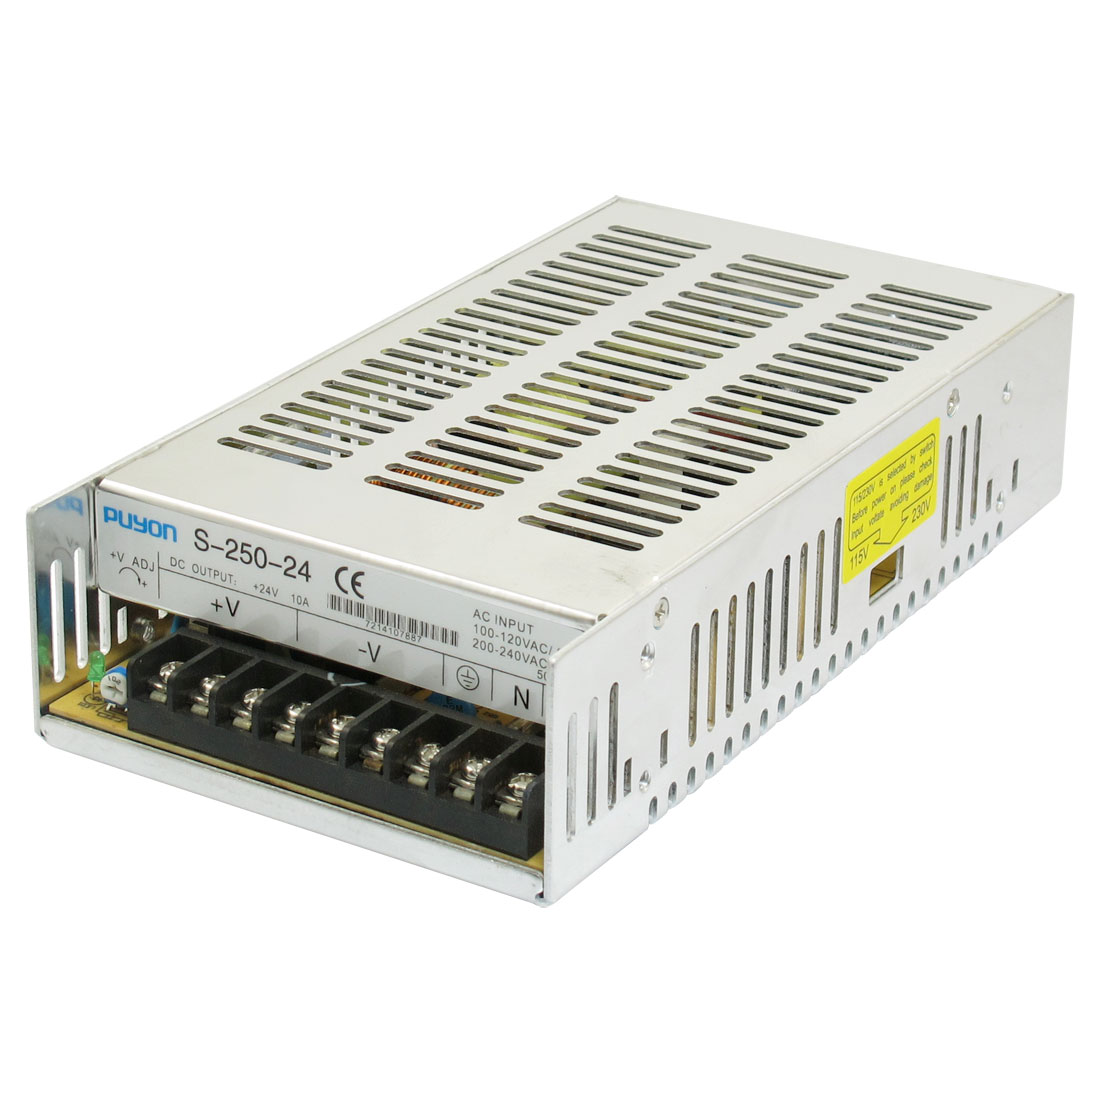 Three Output Switching Power Supply Transformer DC 24V 10A 250W for LED Light